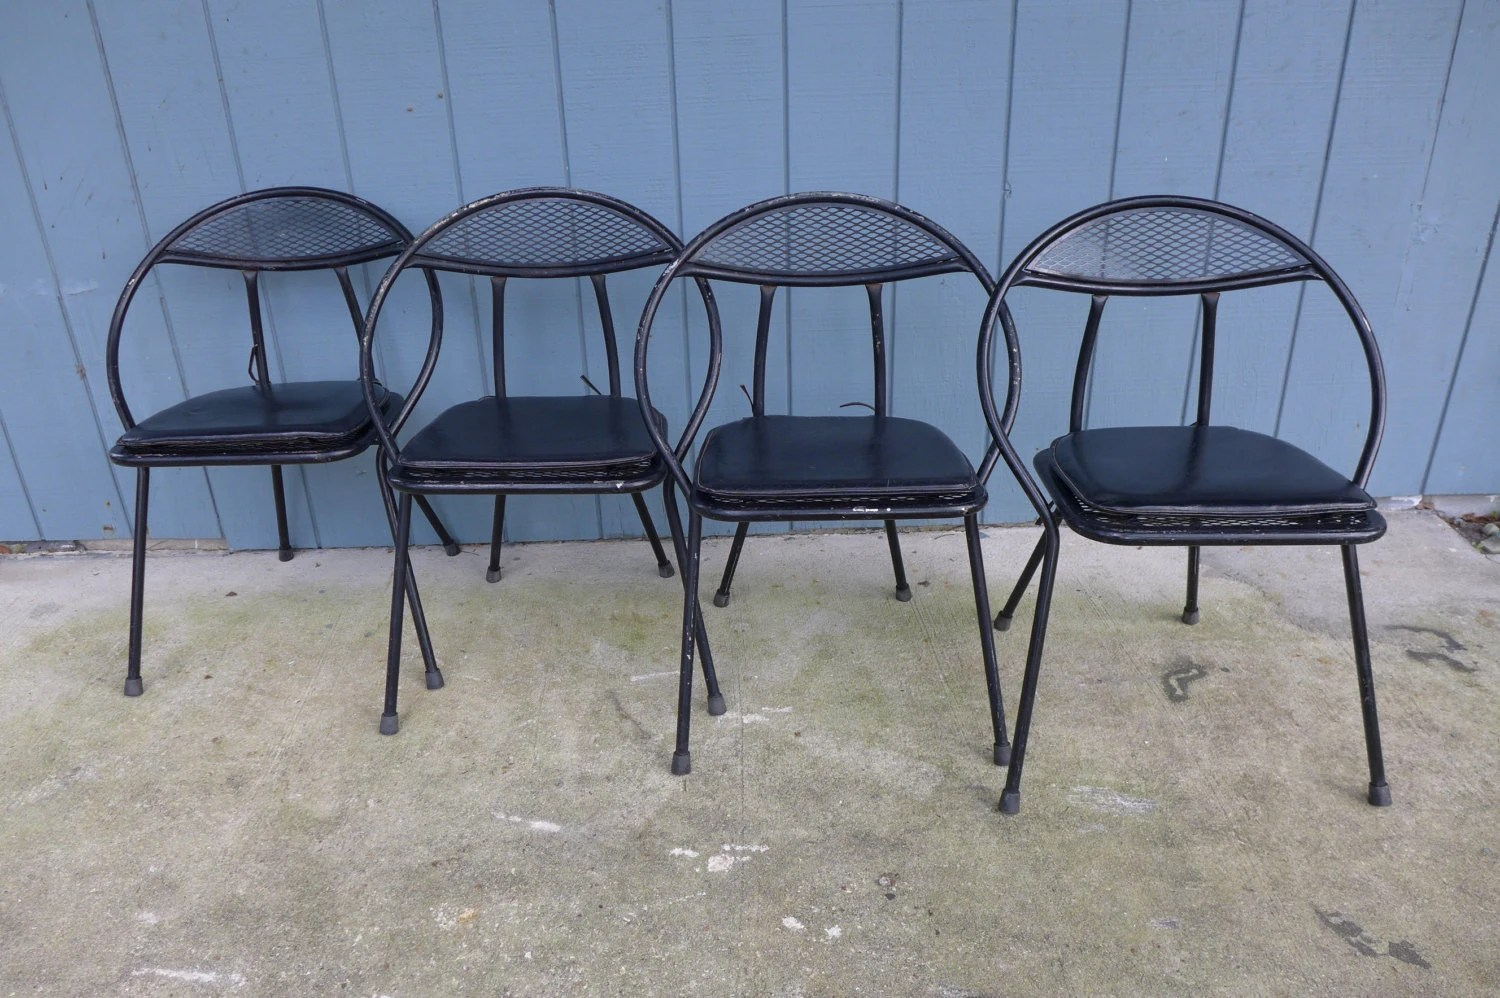 old fashioned metal lawn chairs navy leather chair set of 4 folding patio salterini style by zeejunkhunter